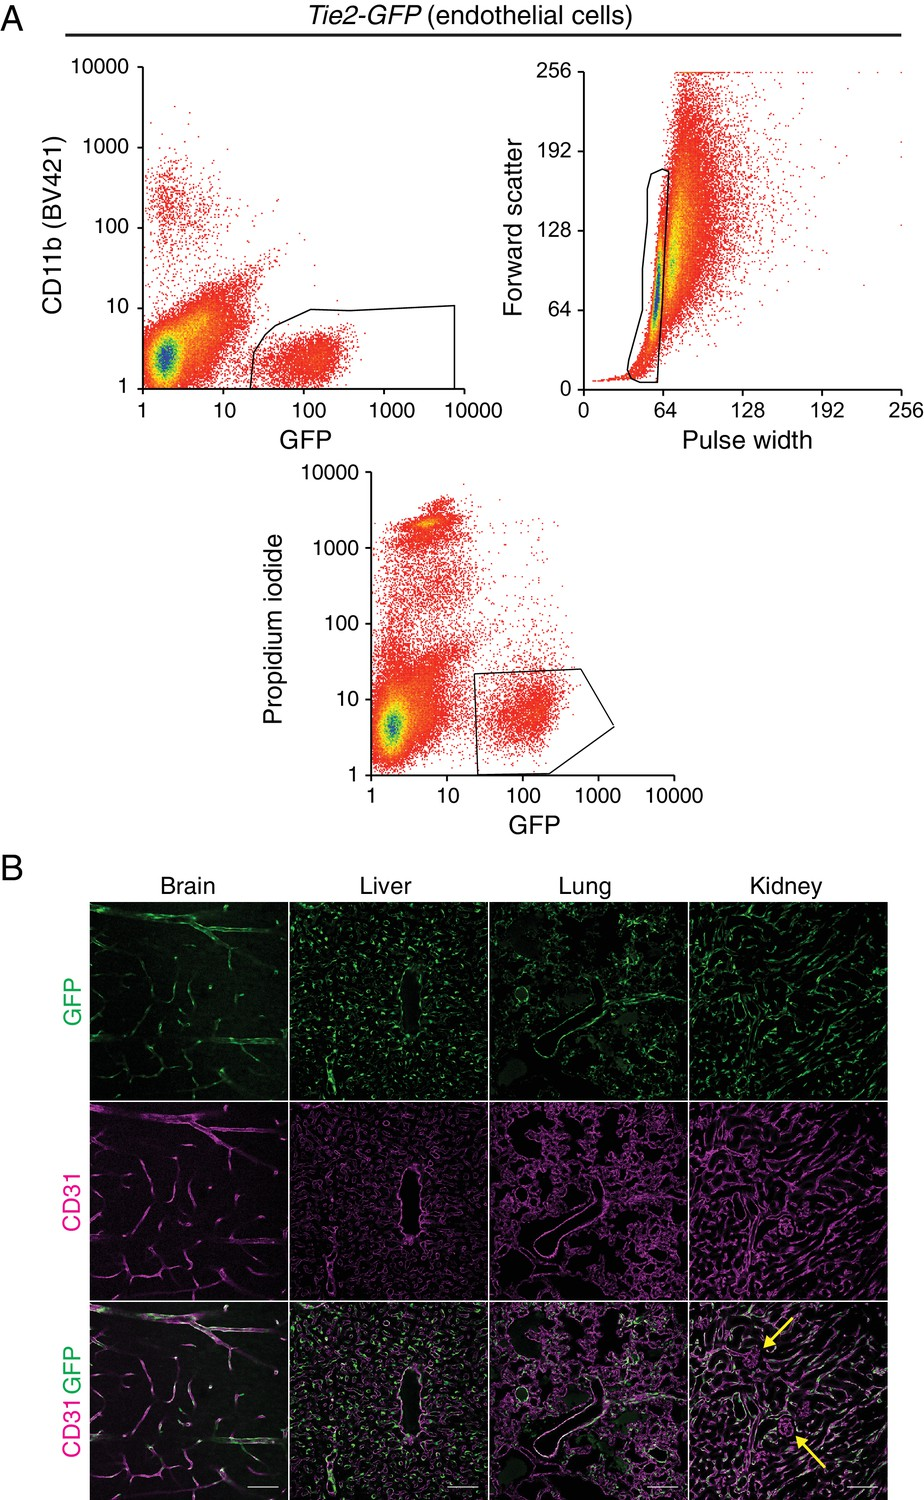 Transcriptional And Epigenomic Landscapes Of Cns Non G2 Schematicjpg 984 Kb 114 Views Tie2 Gfp Transgenic Mouse Enables Isolation Ecs